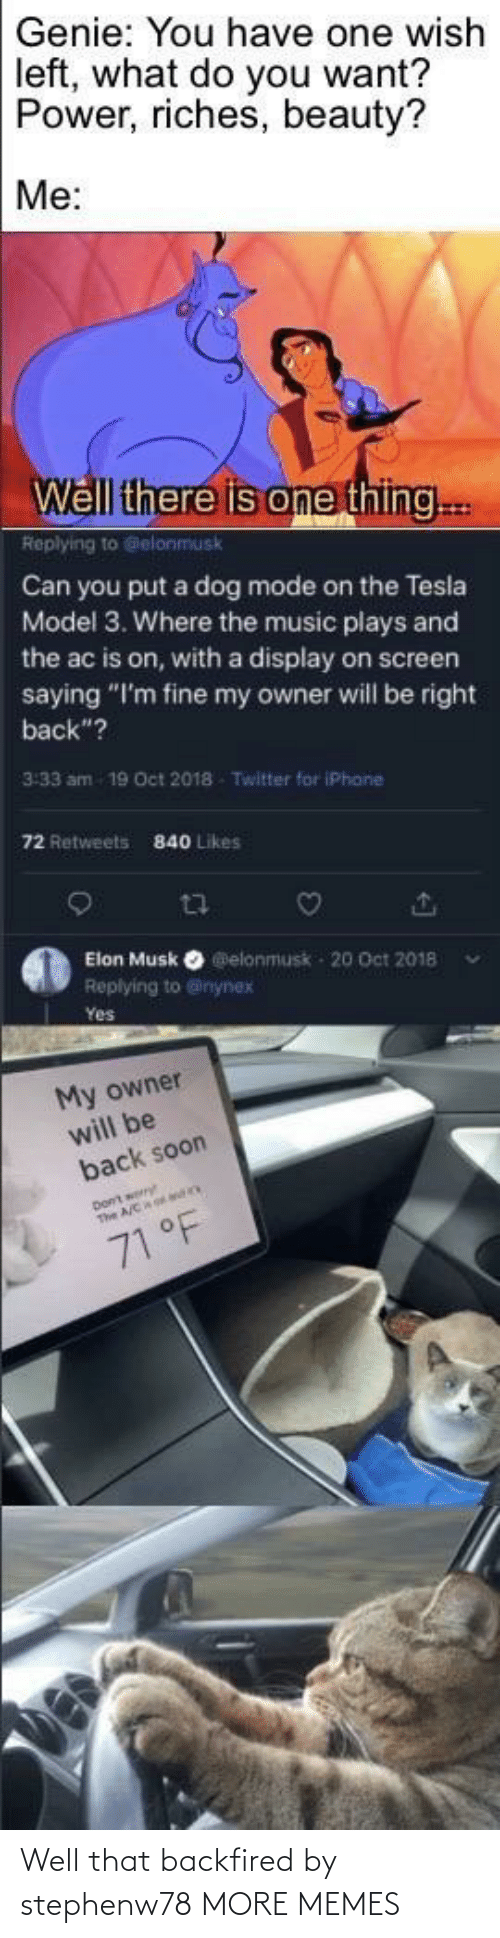 "You Want: Genie: You have one wish  left, what do you want?  Power, riches, beauty?  Me:  Well there is one thing..  Replying to Gelonmusk  Can you put a dog mode on the Tesla  Model 3. Where the music plays and  the ac is on, with a display on screen  saying ""I'm fine my owner will be right  back""?  3:33 am  19 Oct 2018  Twitter for iPhane  72 Retweets  840 Likes  Elon Musk O elonmusk - 20 Oct 2018  Replying to @inynex  Yes  My owner  will be  back soon  71 °F Well that backfired by stephenw78 MORE MEMES"